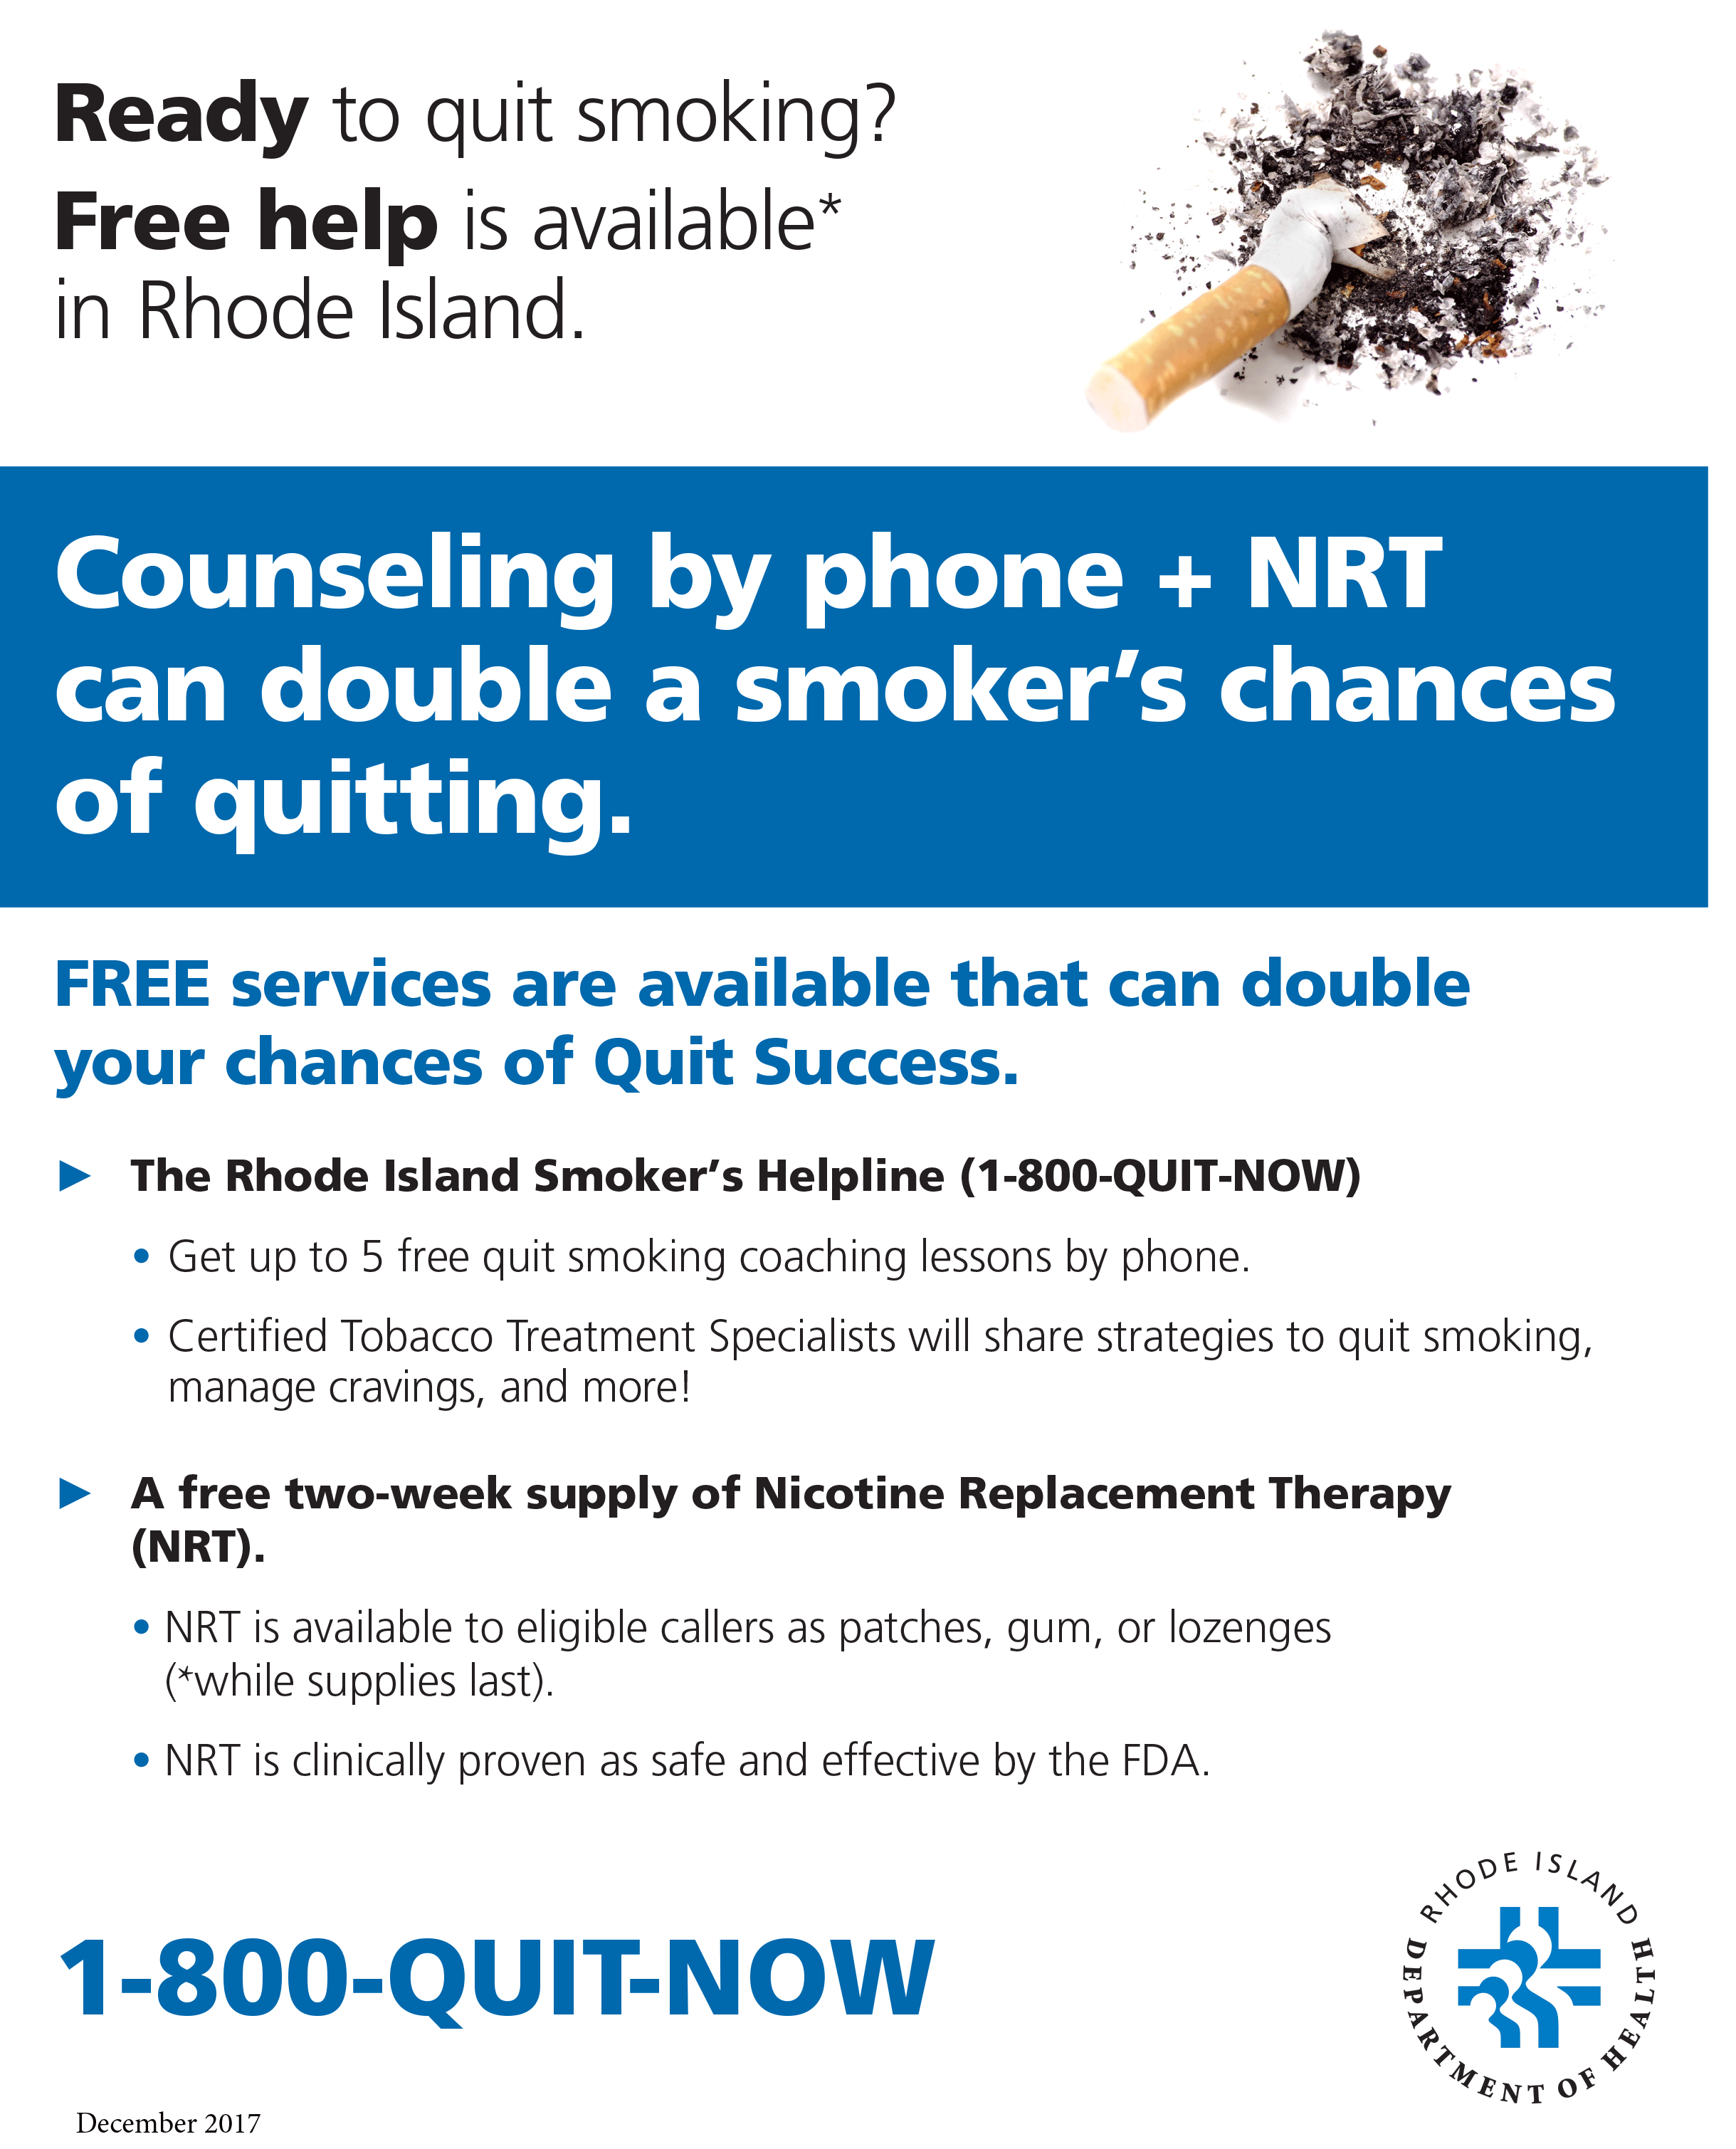 Ready to Quit? Free Help Is Available in RI (Available as online PDF only to download.)